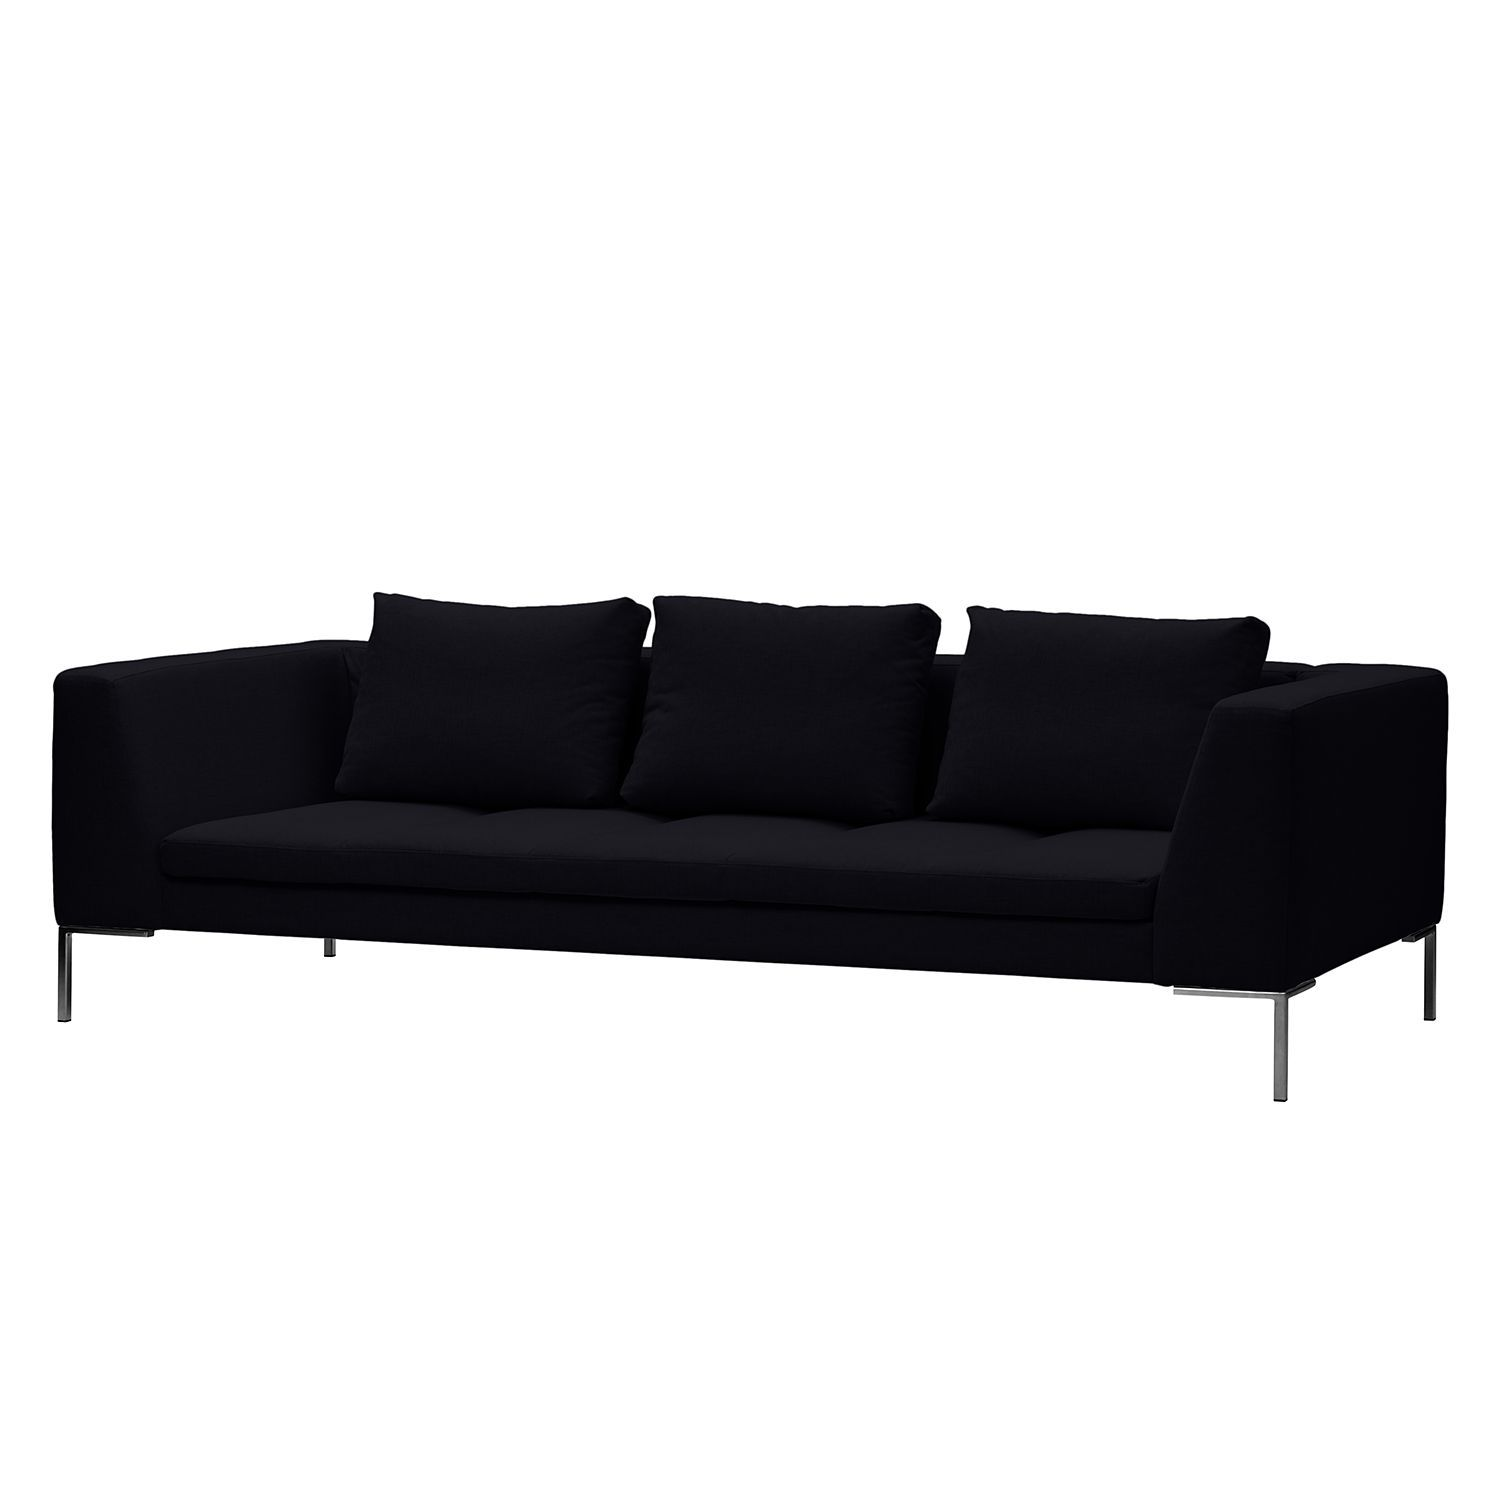 Sofa Madison (3-Sitzer) Webstoff - Stoff Saia Anthrazit